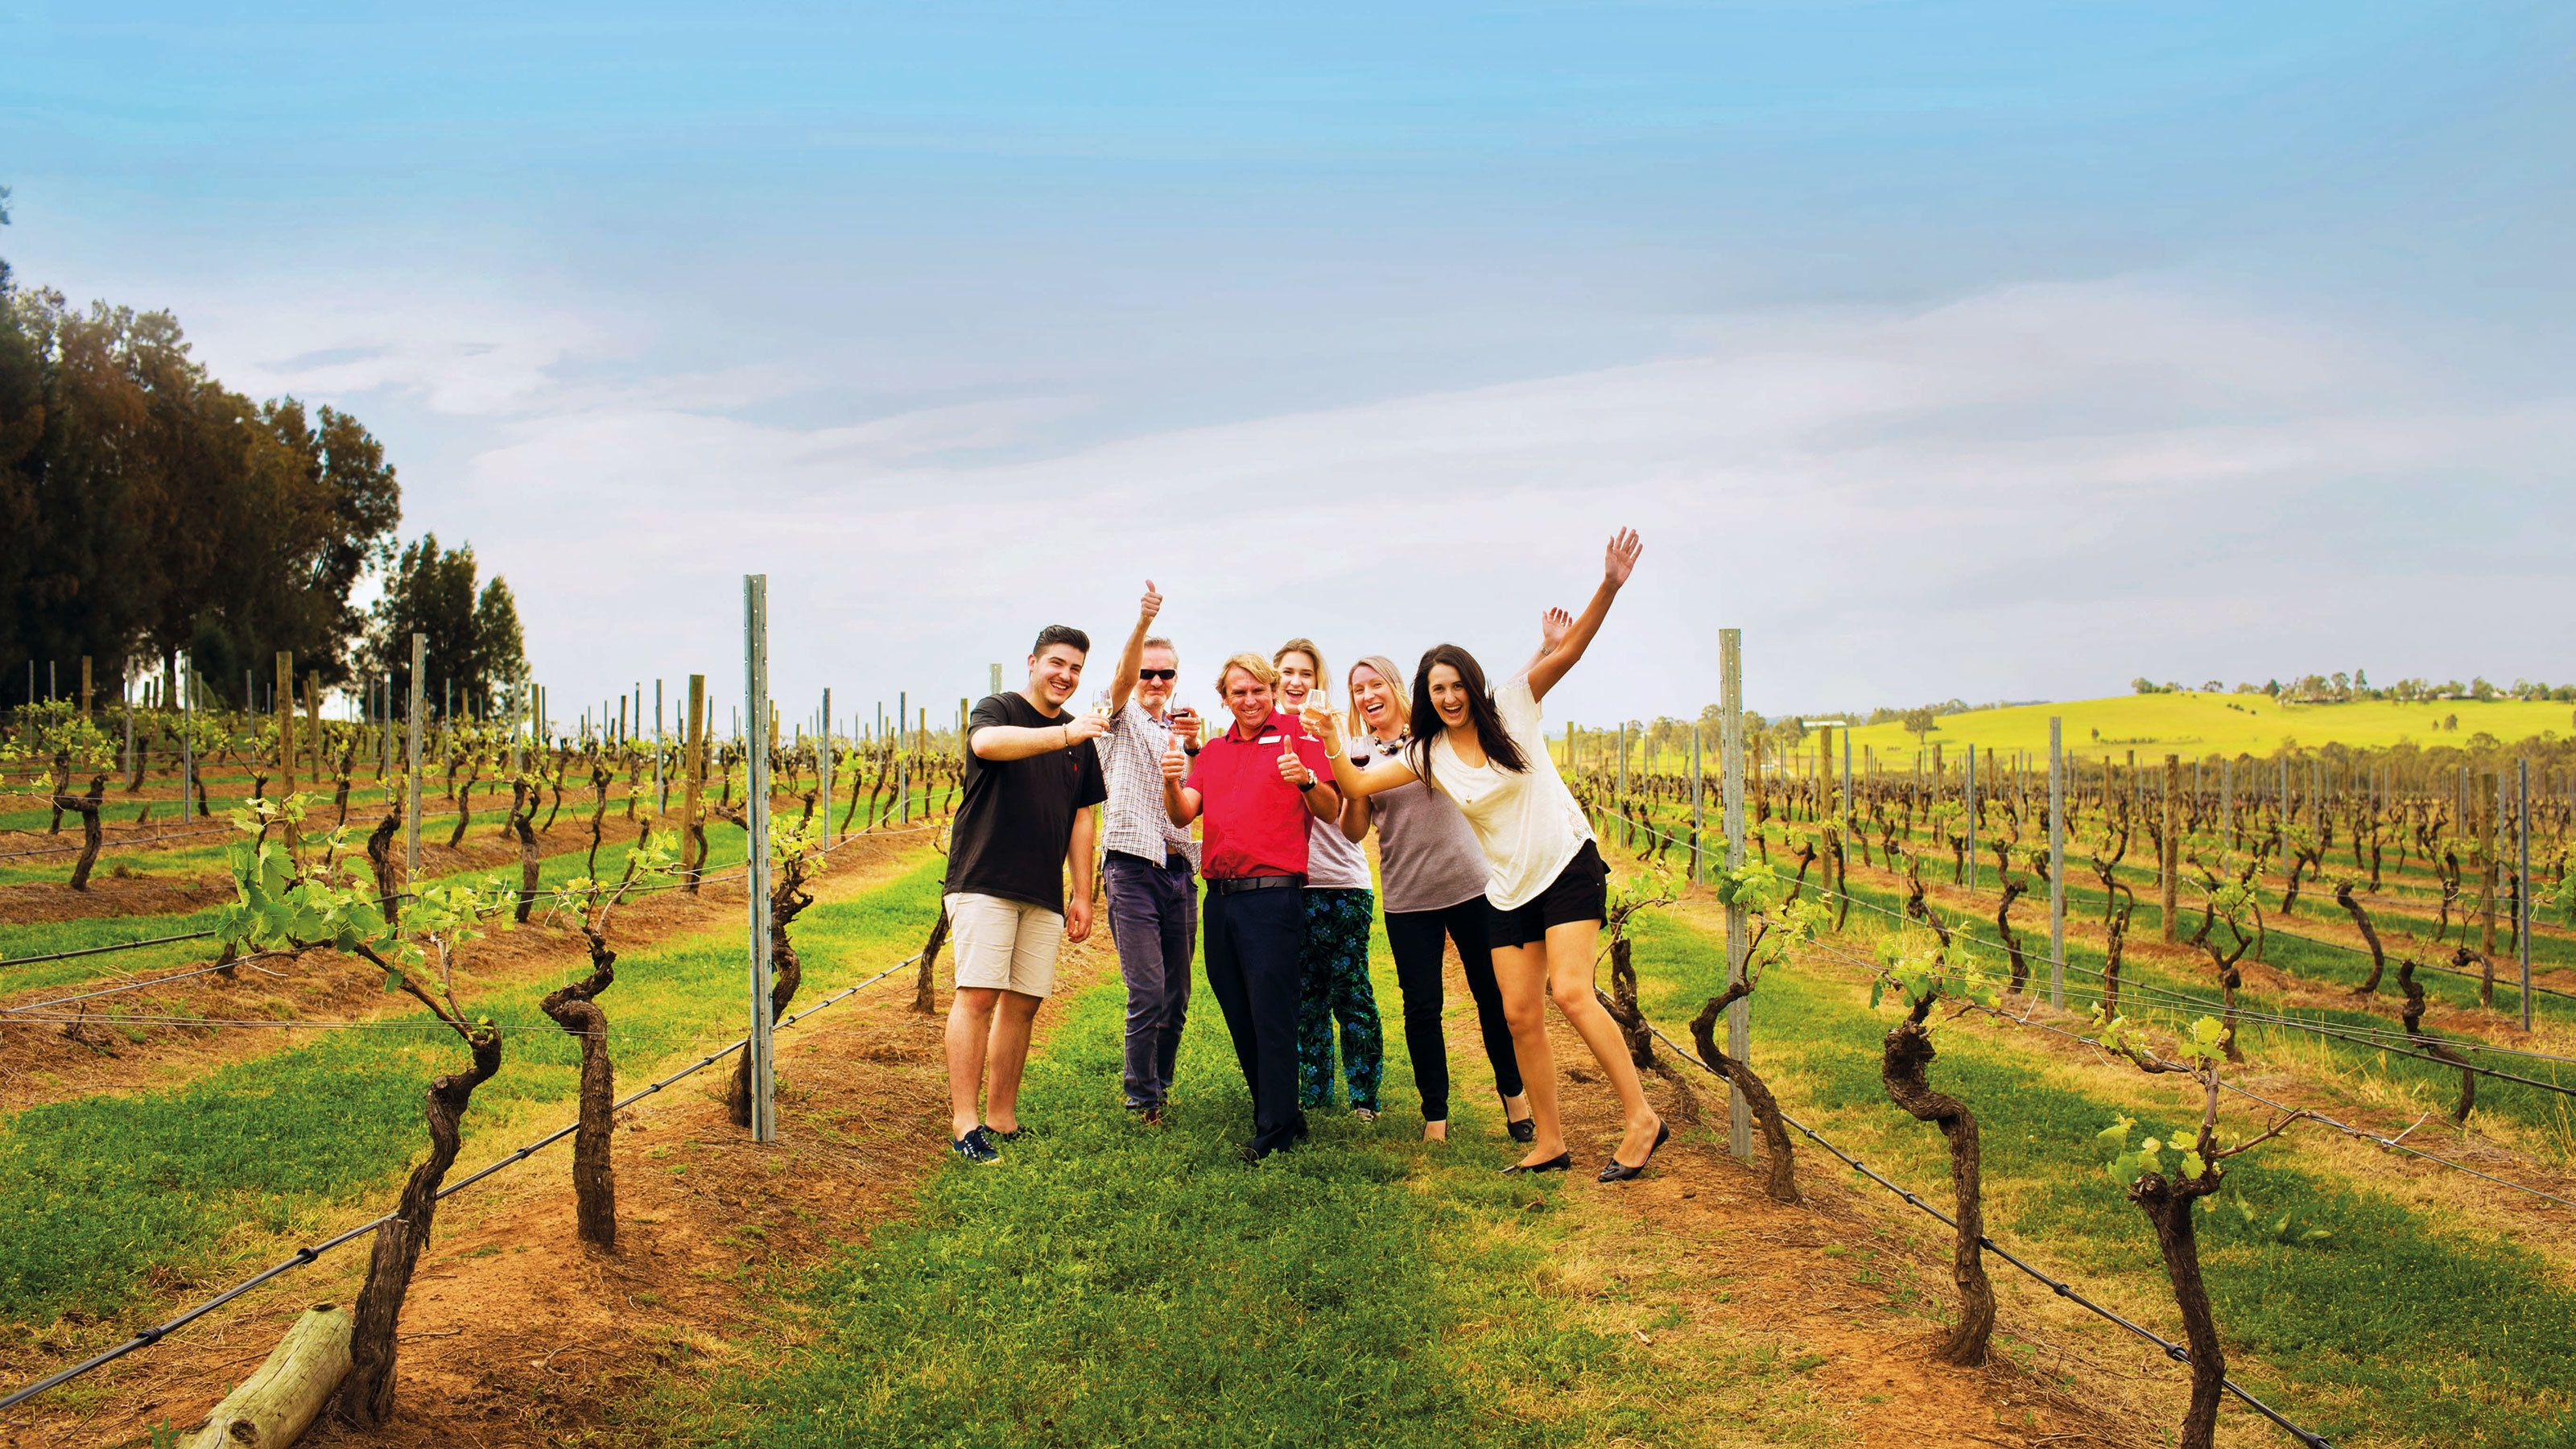 4-Day Food & Wine Discovery Tour